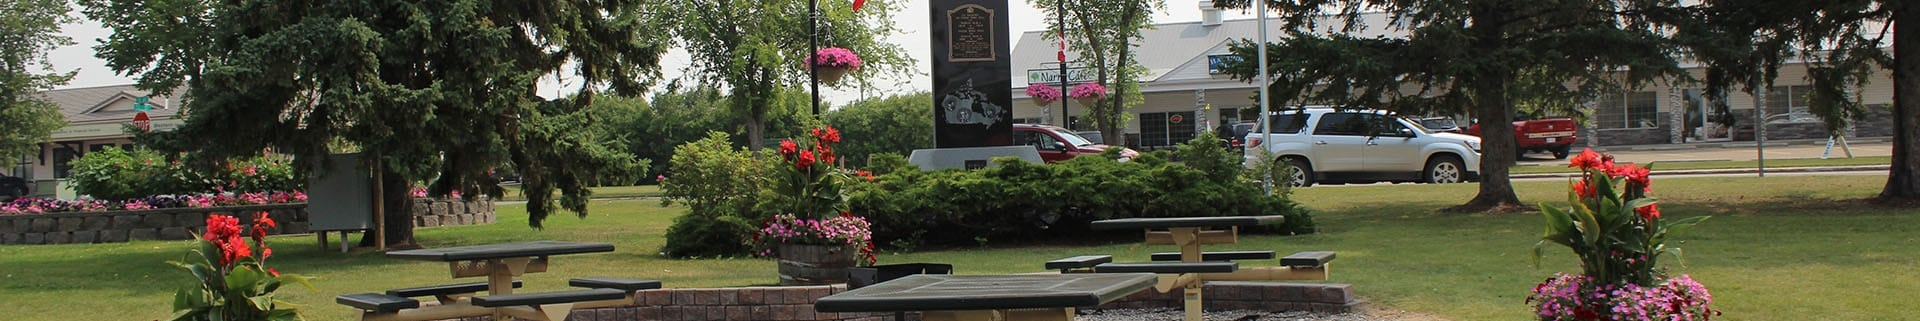 Picnic area with flower pots in Centennial Park in the Town of Olds